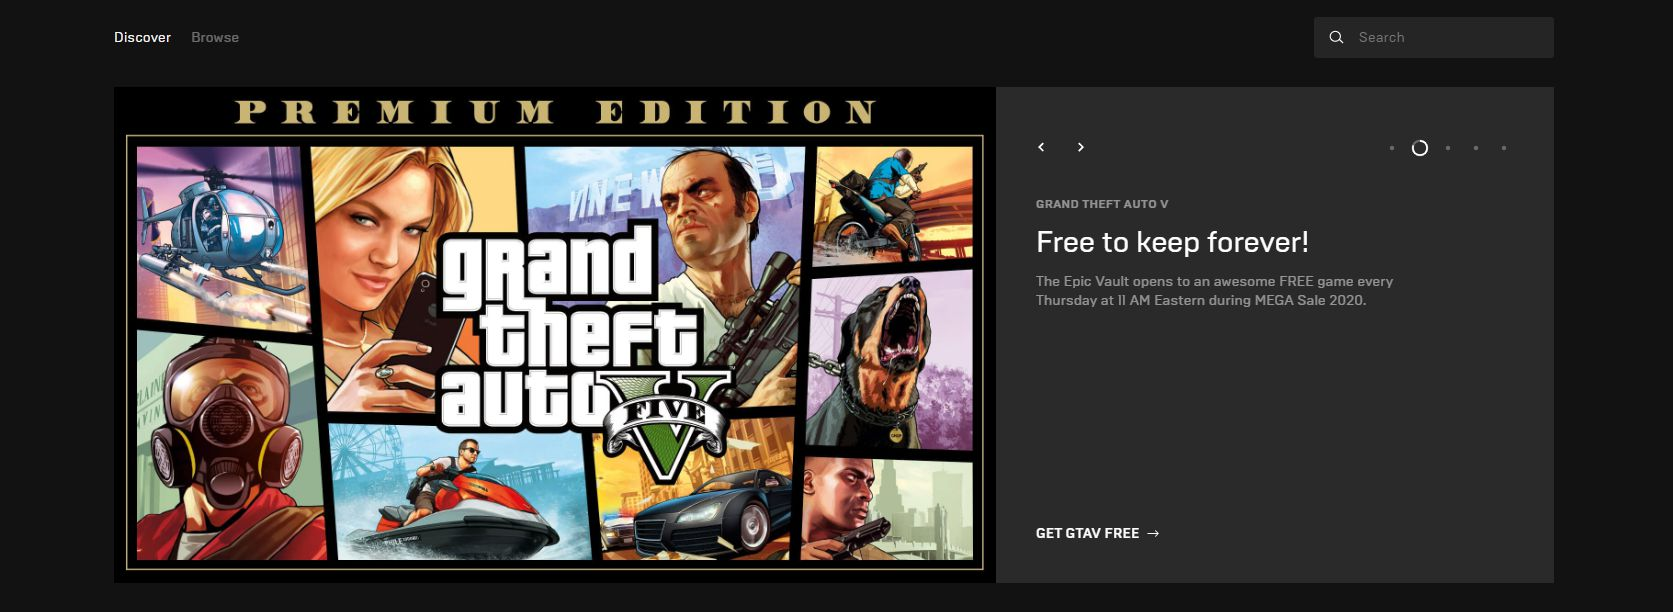 Image showing the GTA V Epic Games free game page.